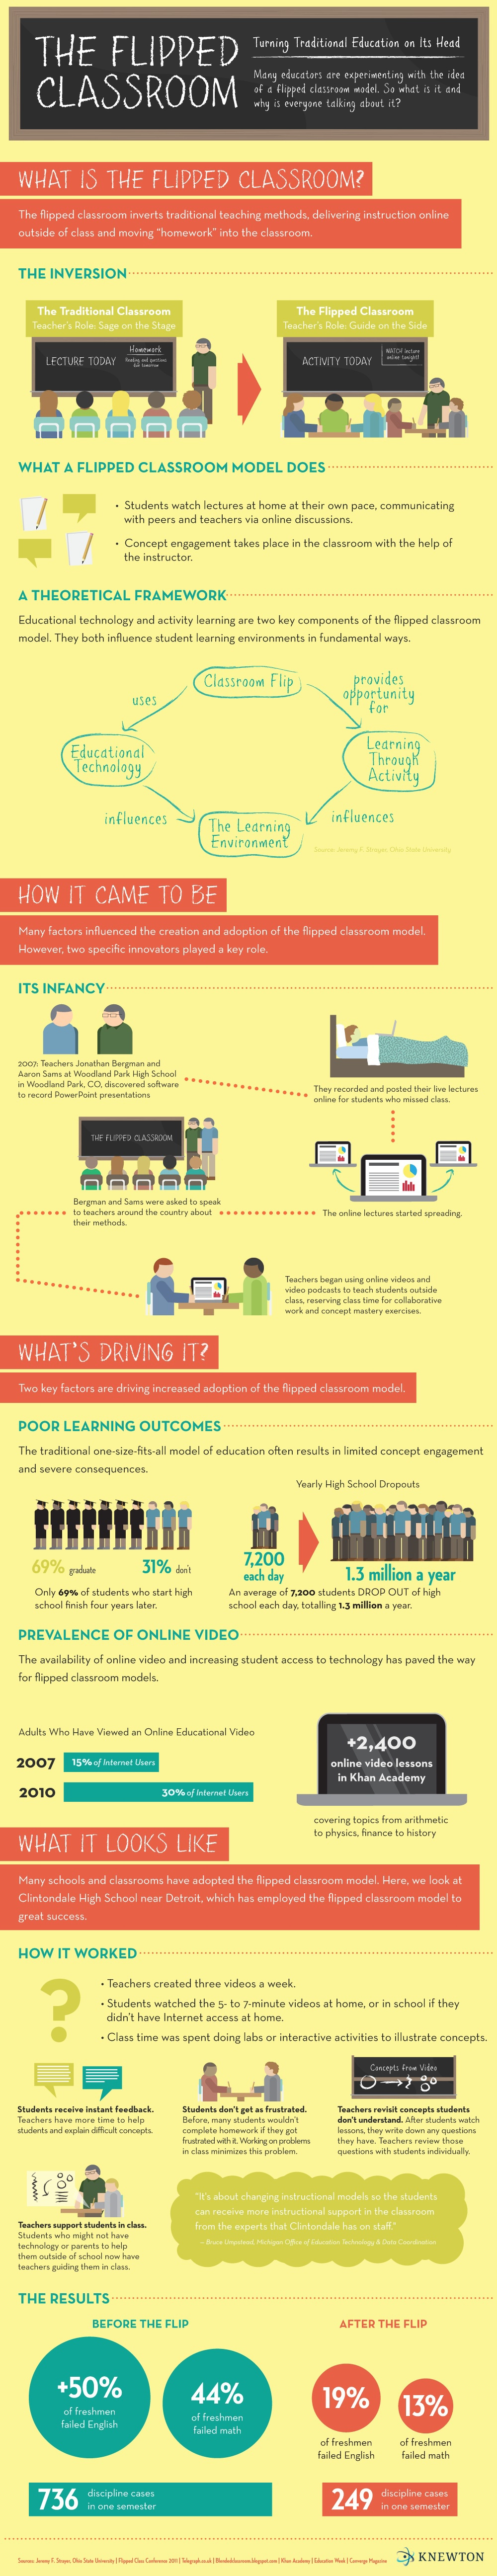 flipped-classroom-education-infographic-knewton